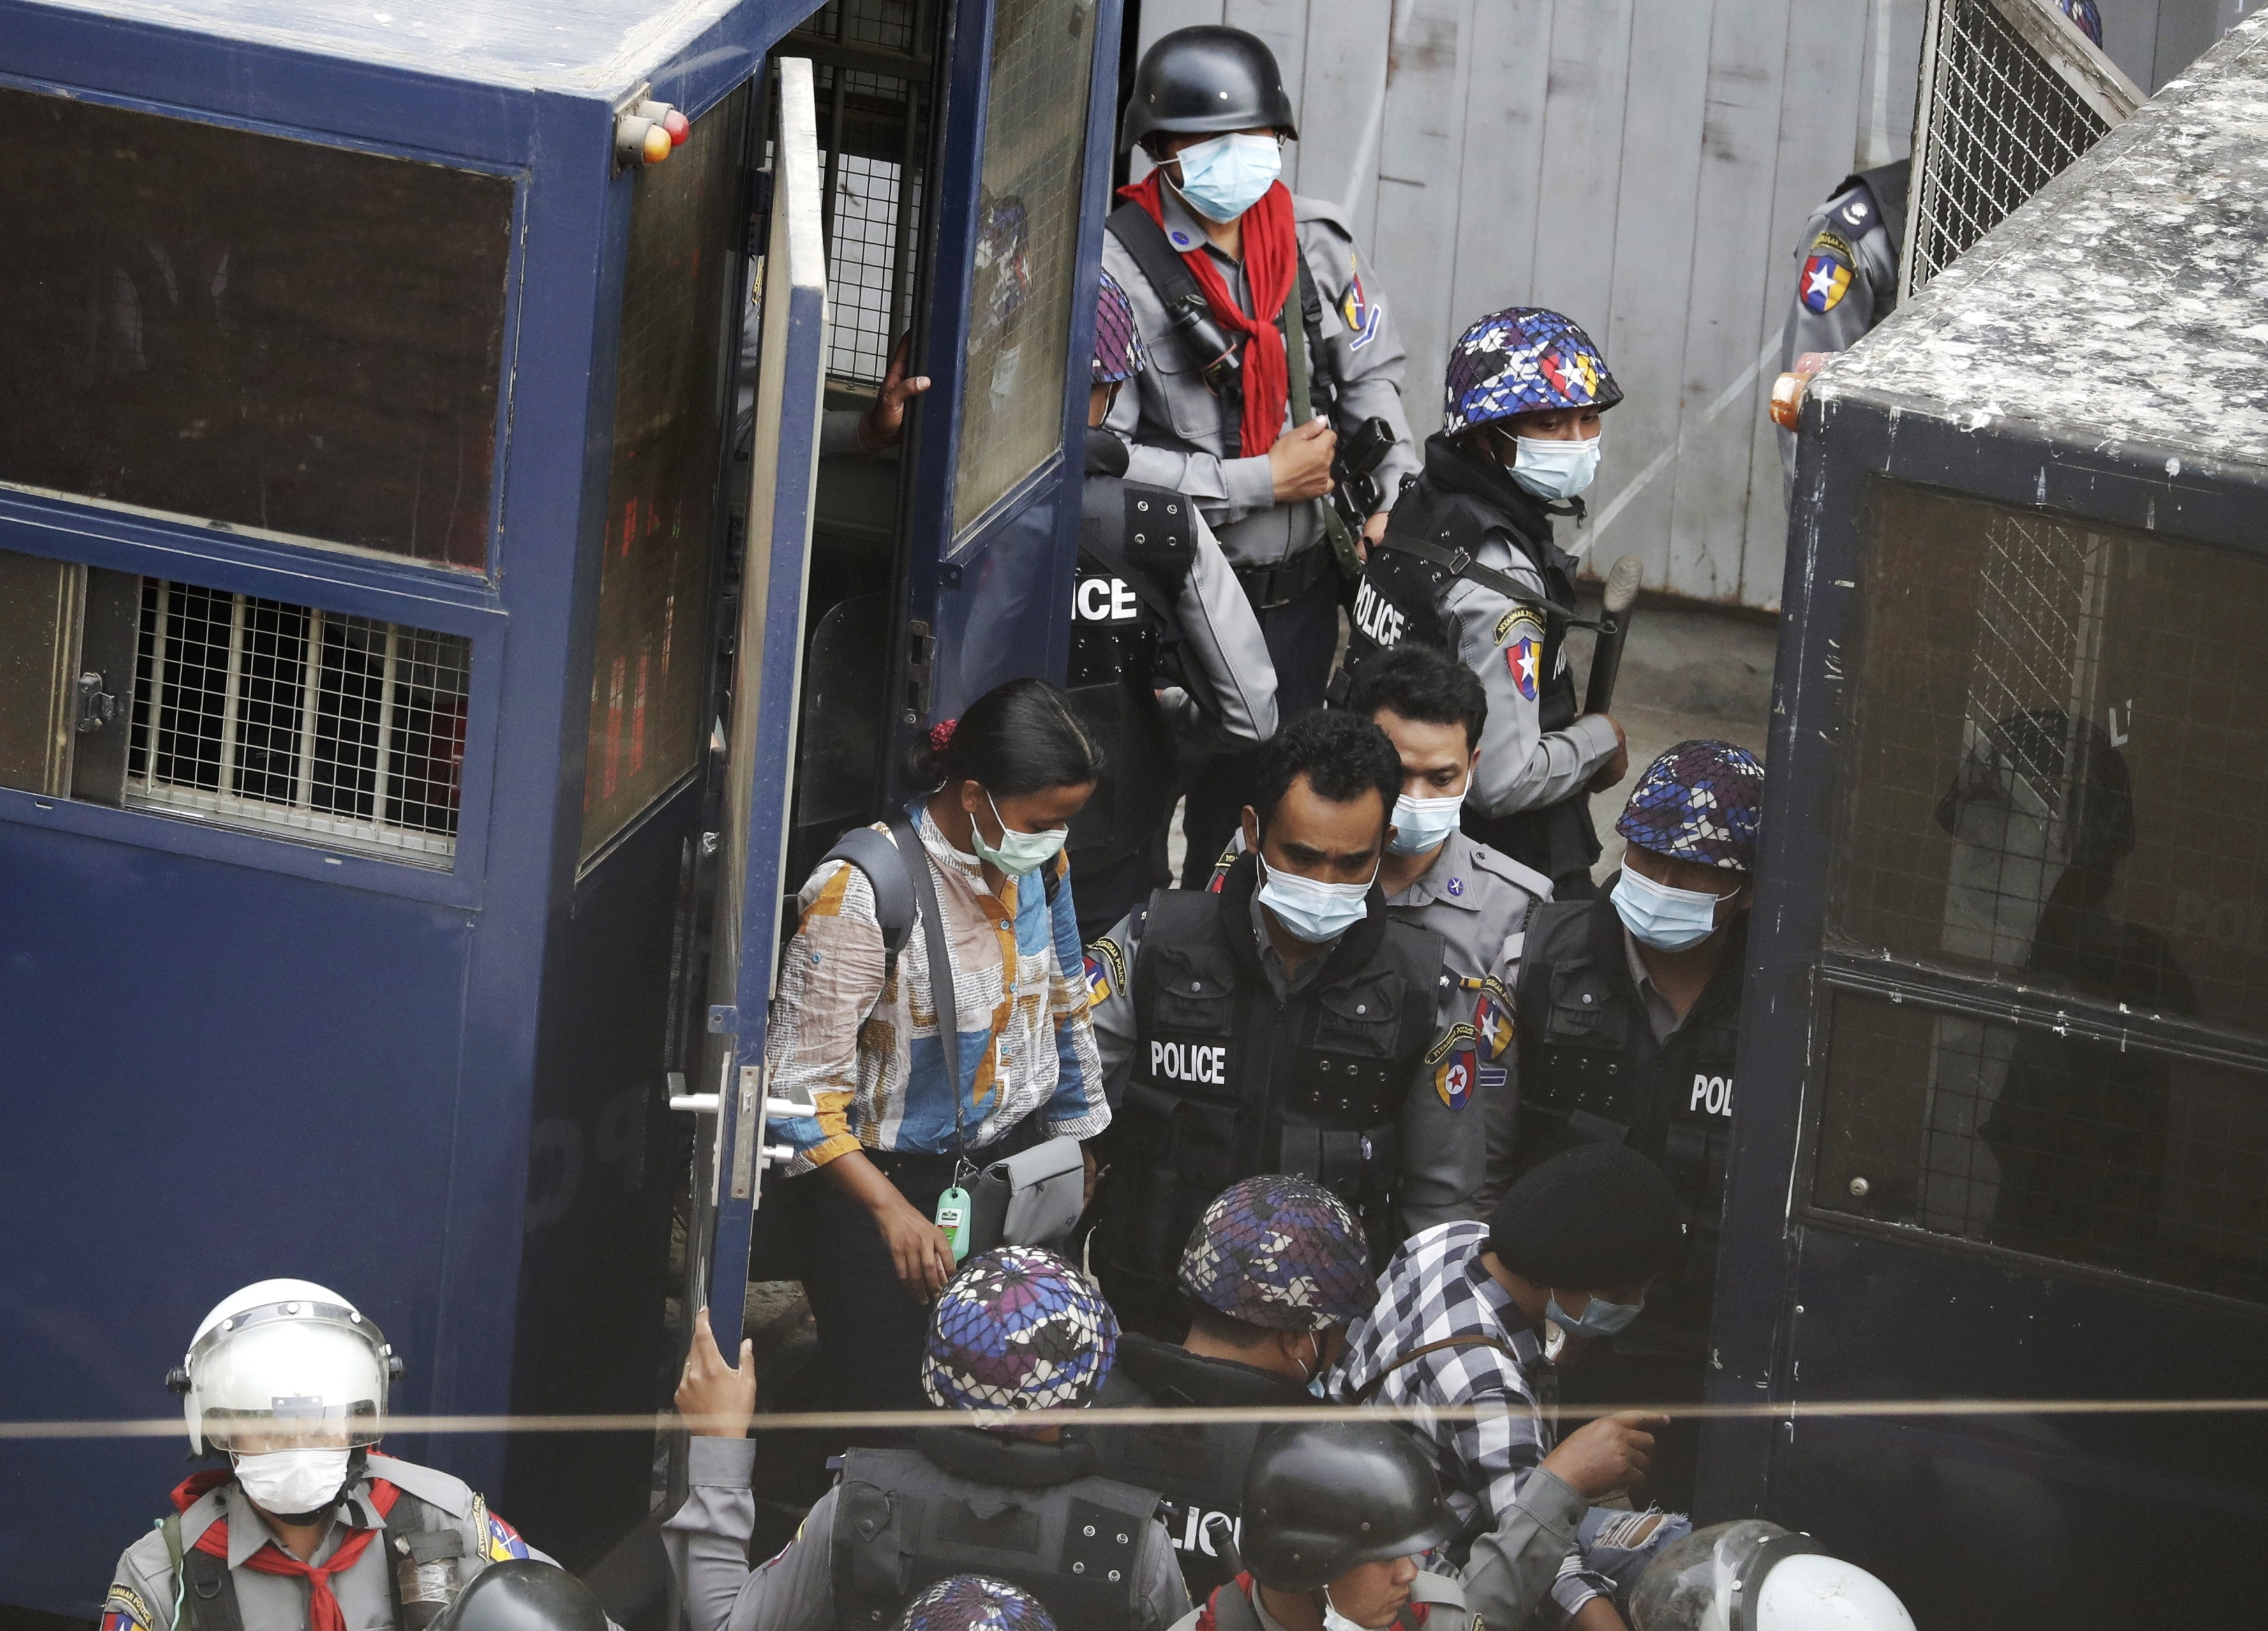 Police transfer arrested Myanmar journalist Kay Zun Nway from a police vehicle to another during a protest against the military coup in Yangon.